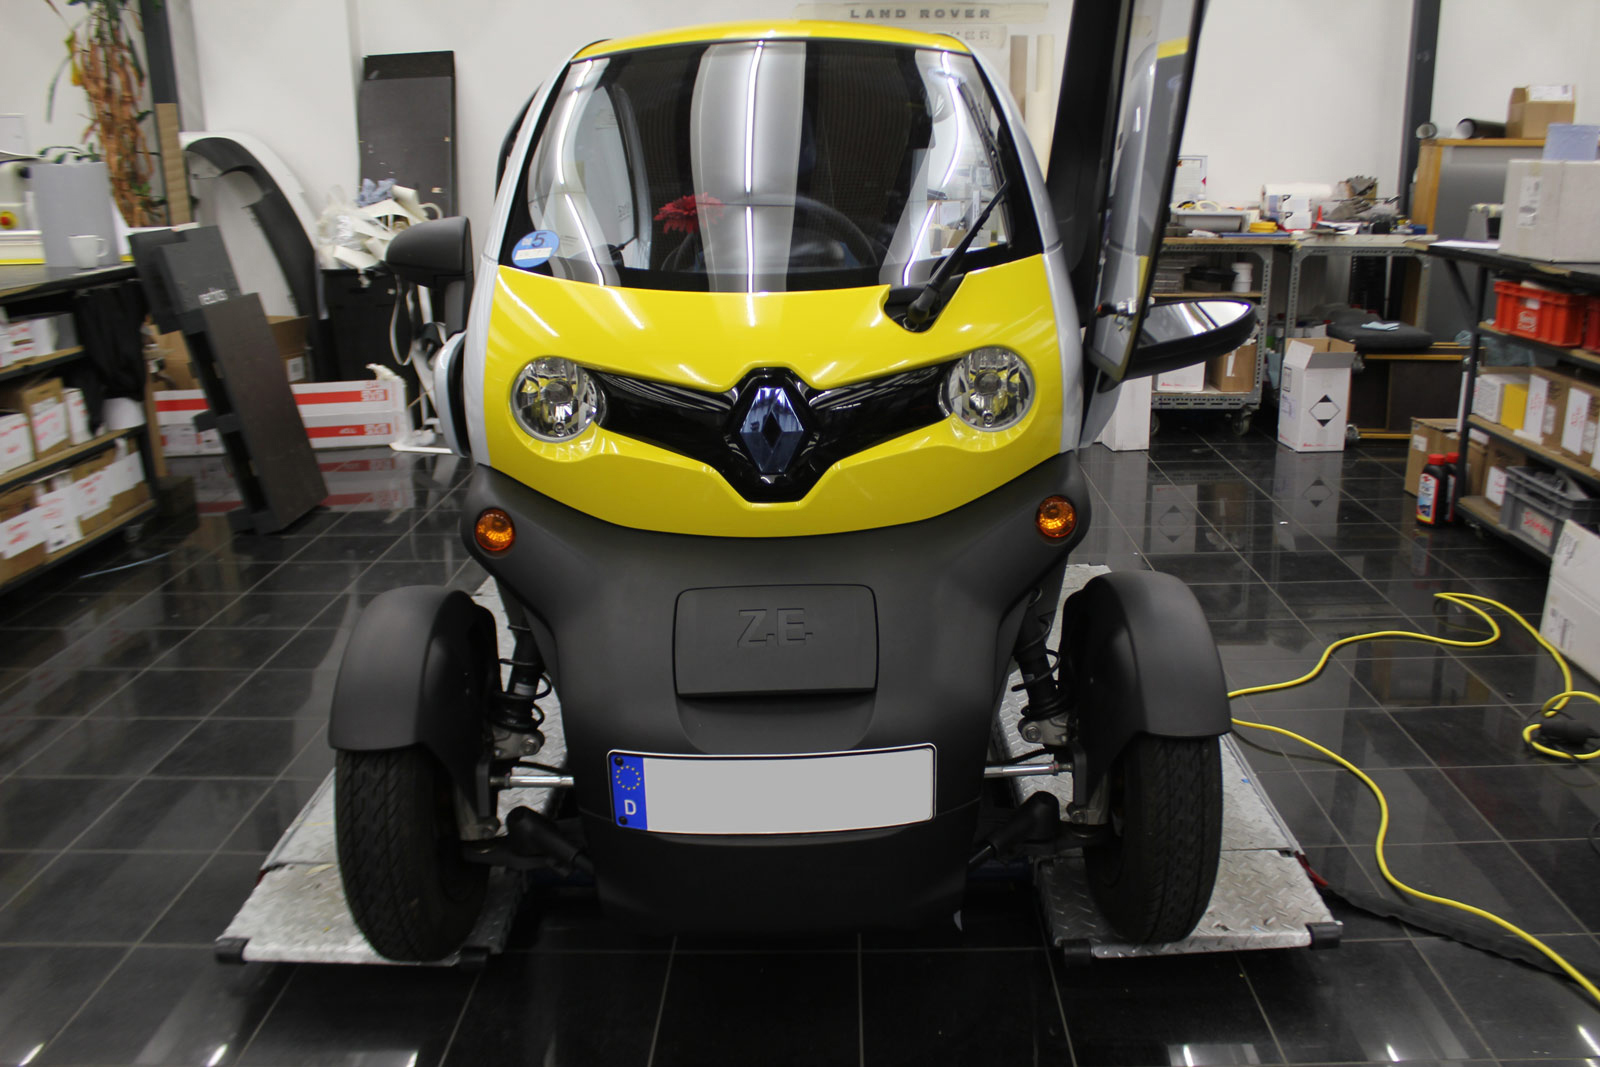 renault twizy location twizy v hicules electriques v hicules renault fr location renault twizy. Black Bedroom Furniture Sets. Home Design Ideas